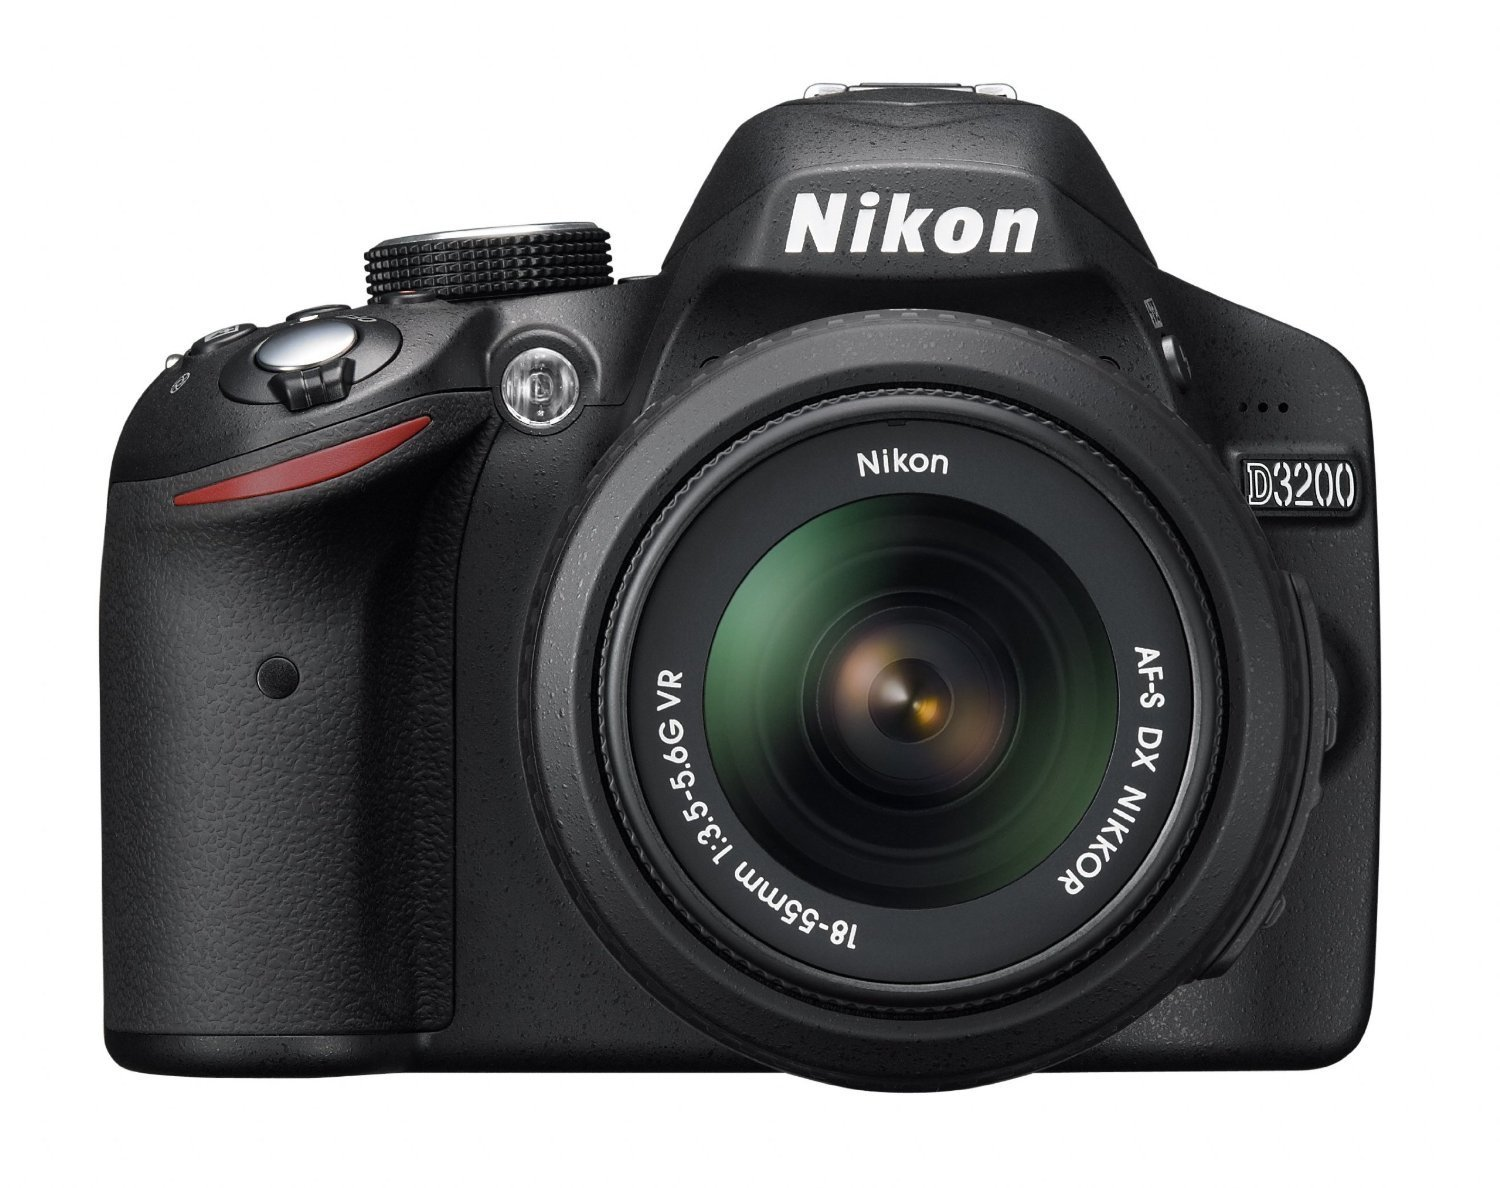 Amazon.com : Nikon D3200 24.2 MP CMOS Digital SLR with 18-55mm f/3.5-5.6 AF-S DX VR NIKKOR Zoom Lens (Refurbished)